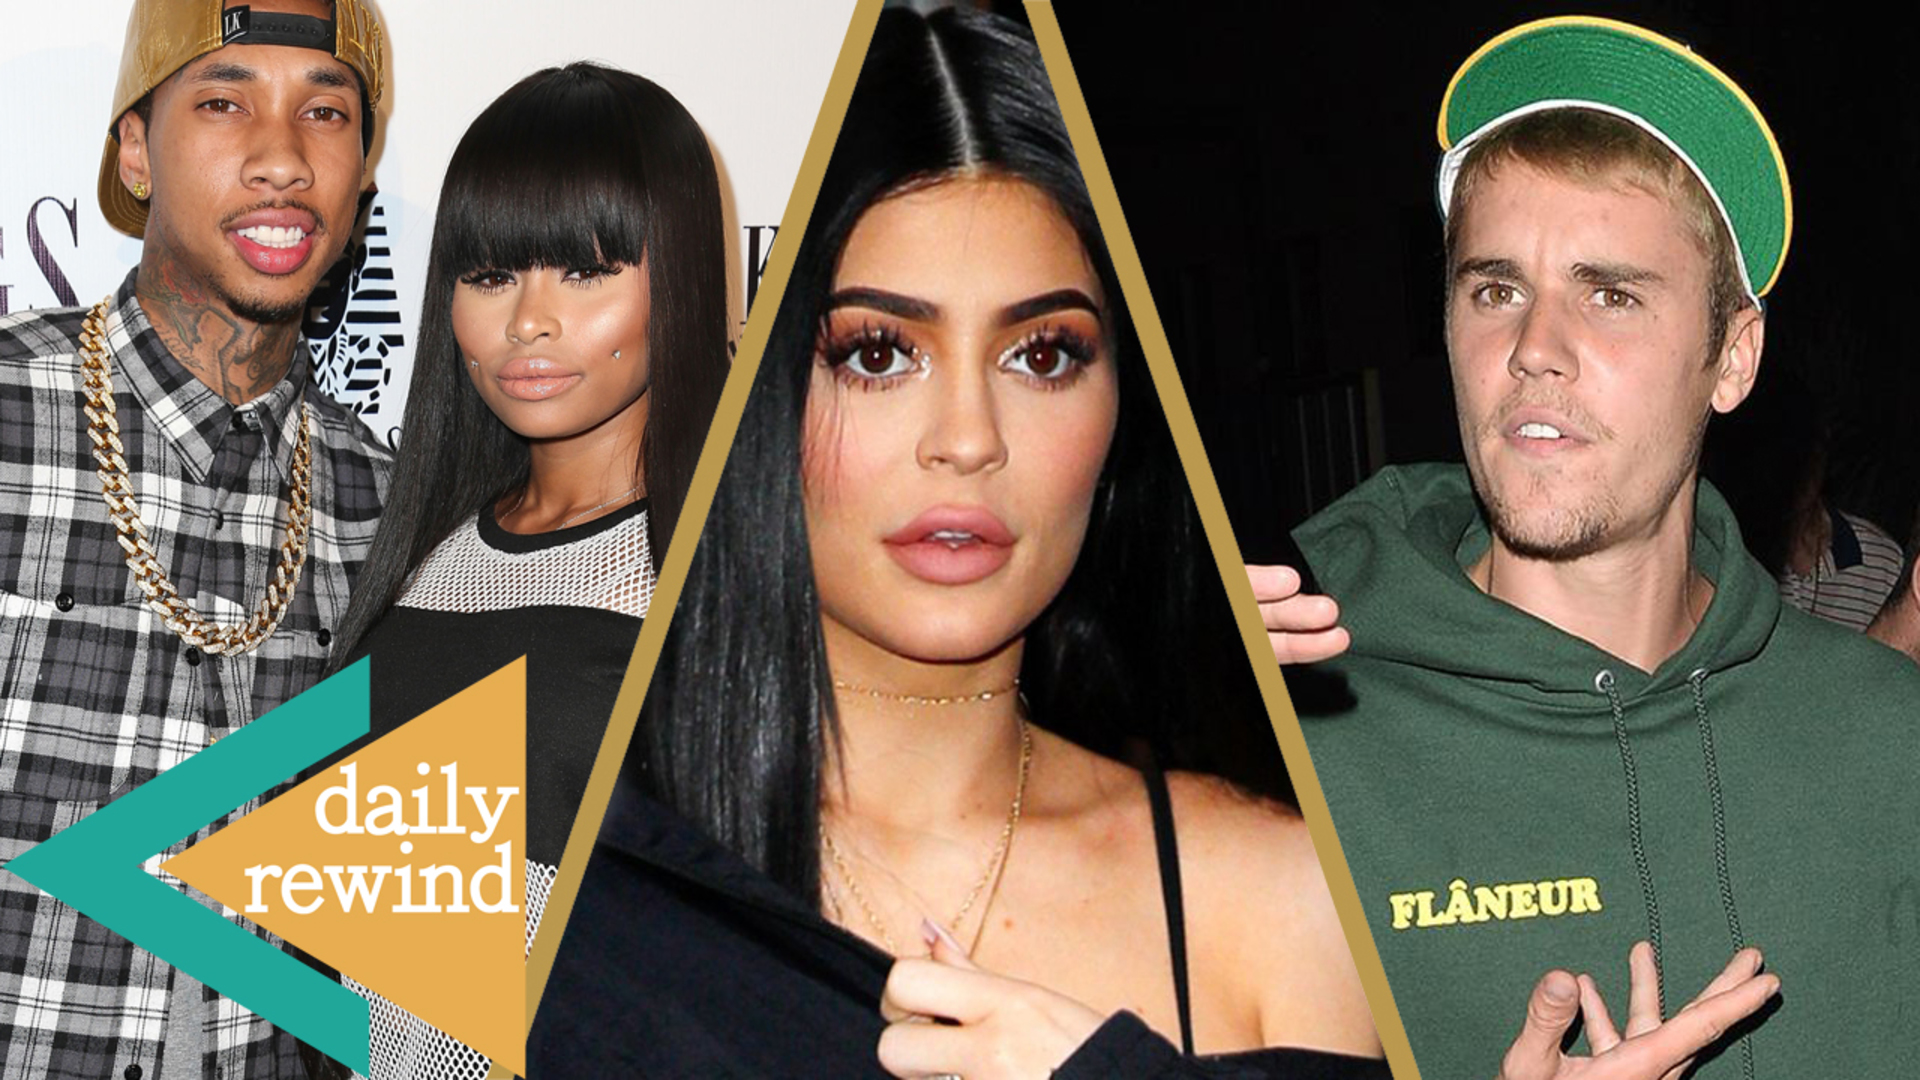 Blac Chyna REUNITES with Tyga, Kylie Jenner Worried About Her New Show, Bieber's Car Accident -DR